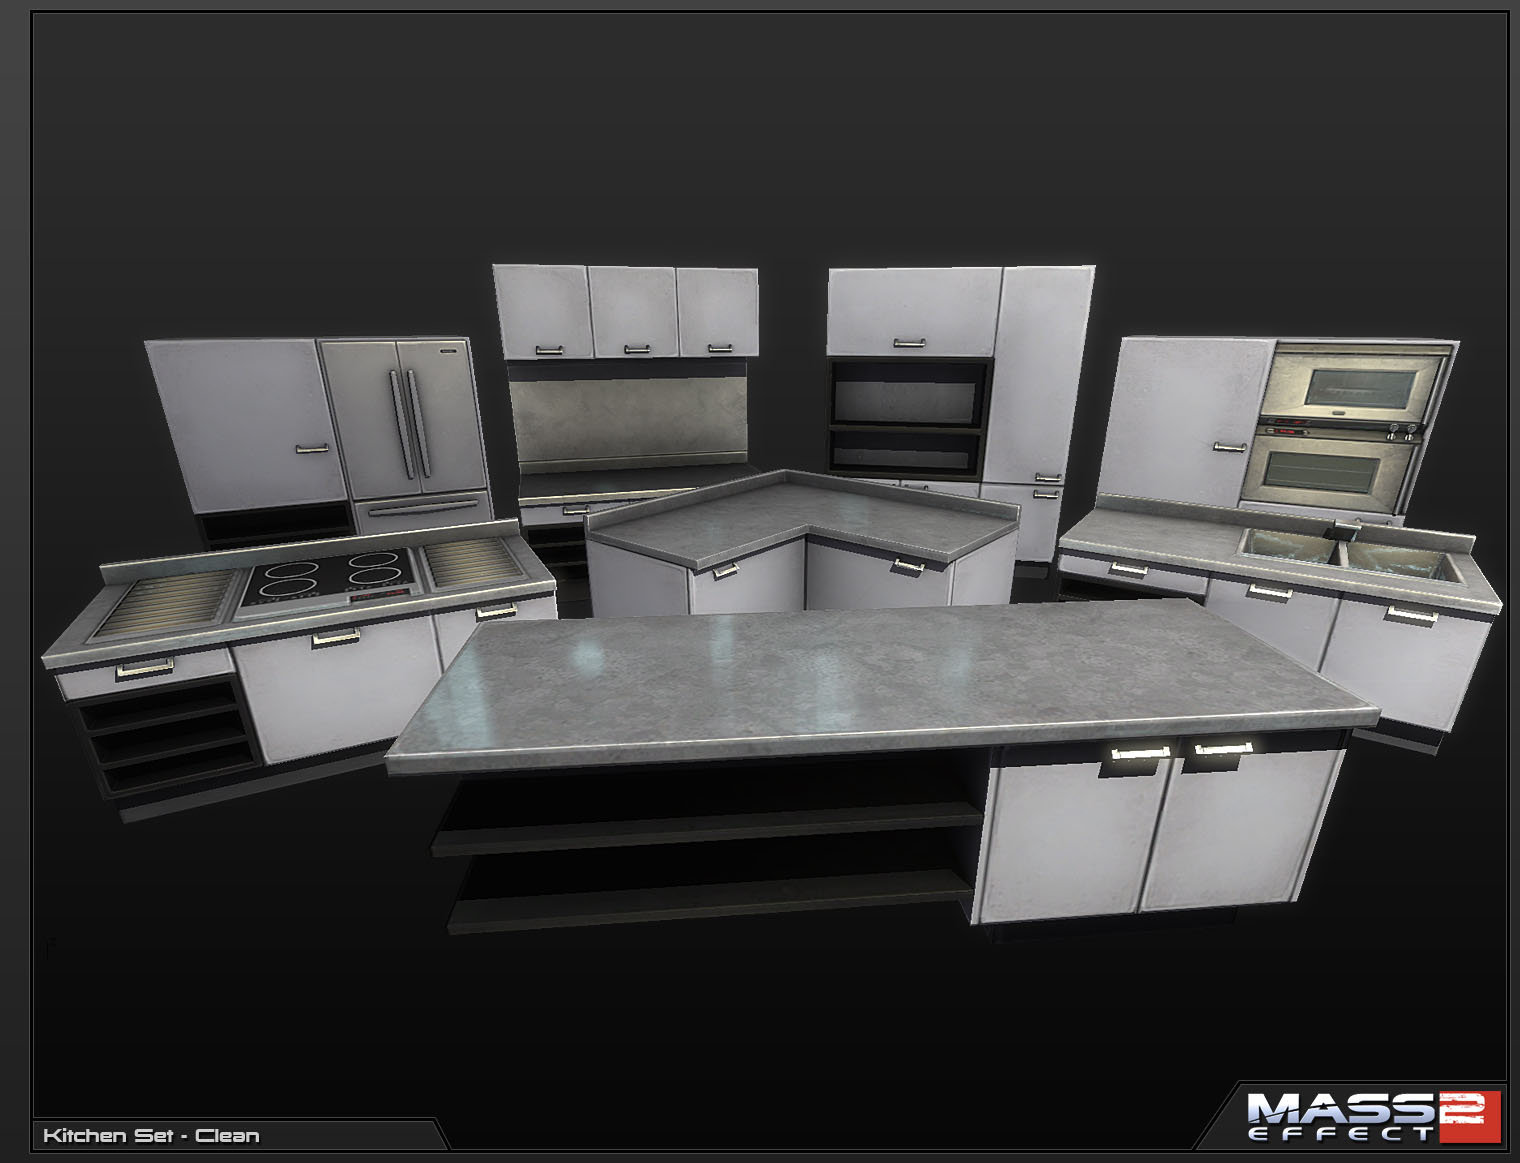 Mark van haitsma kitchen set clean